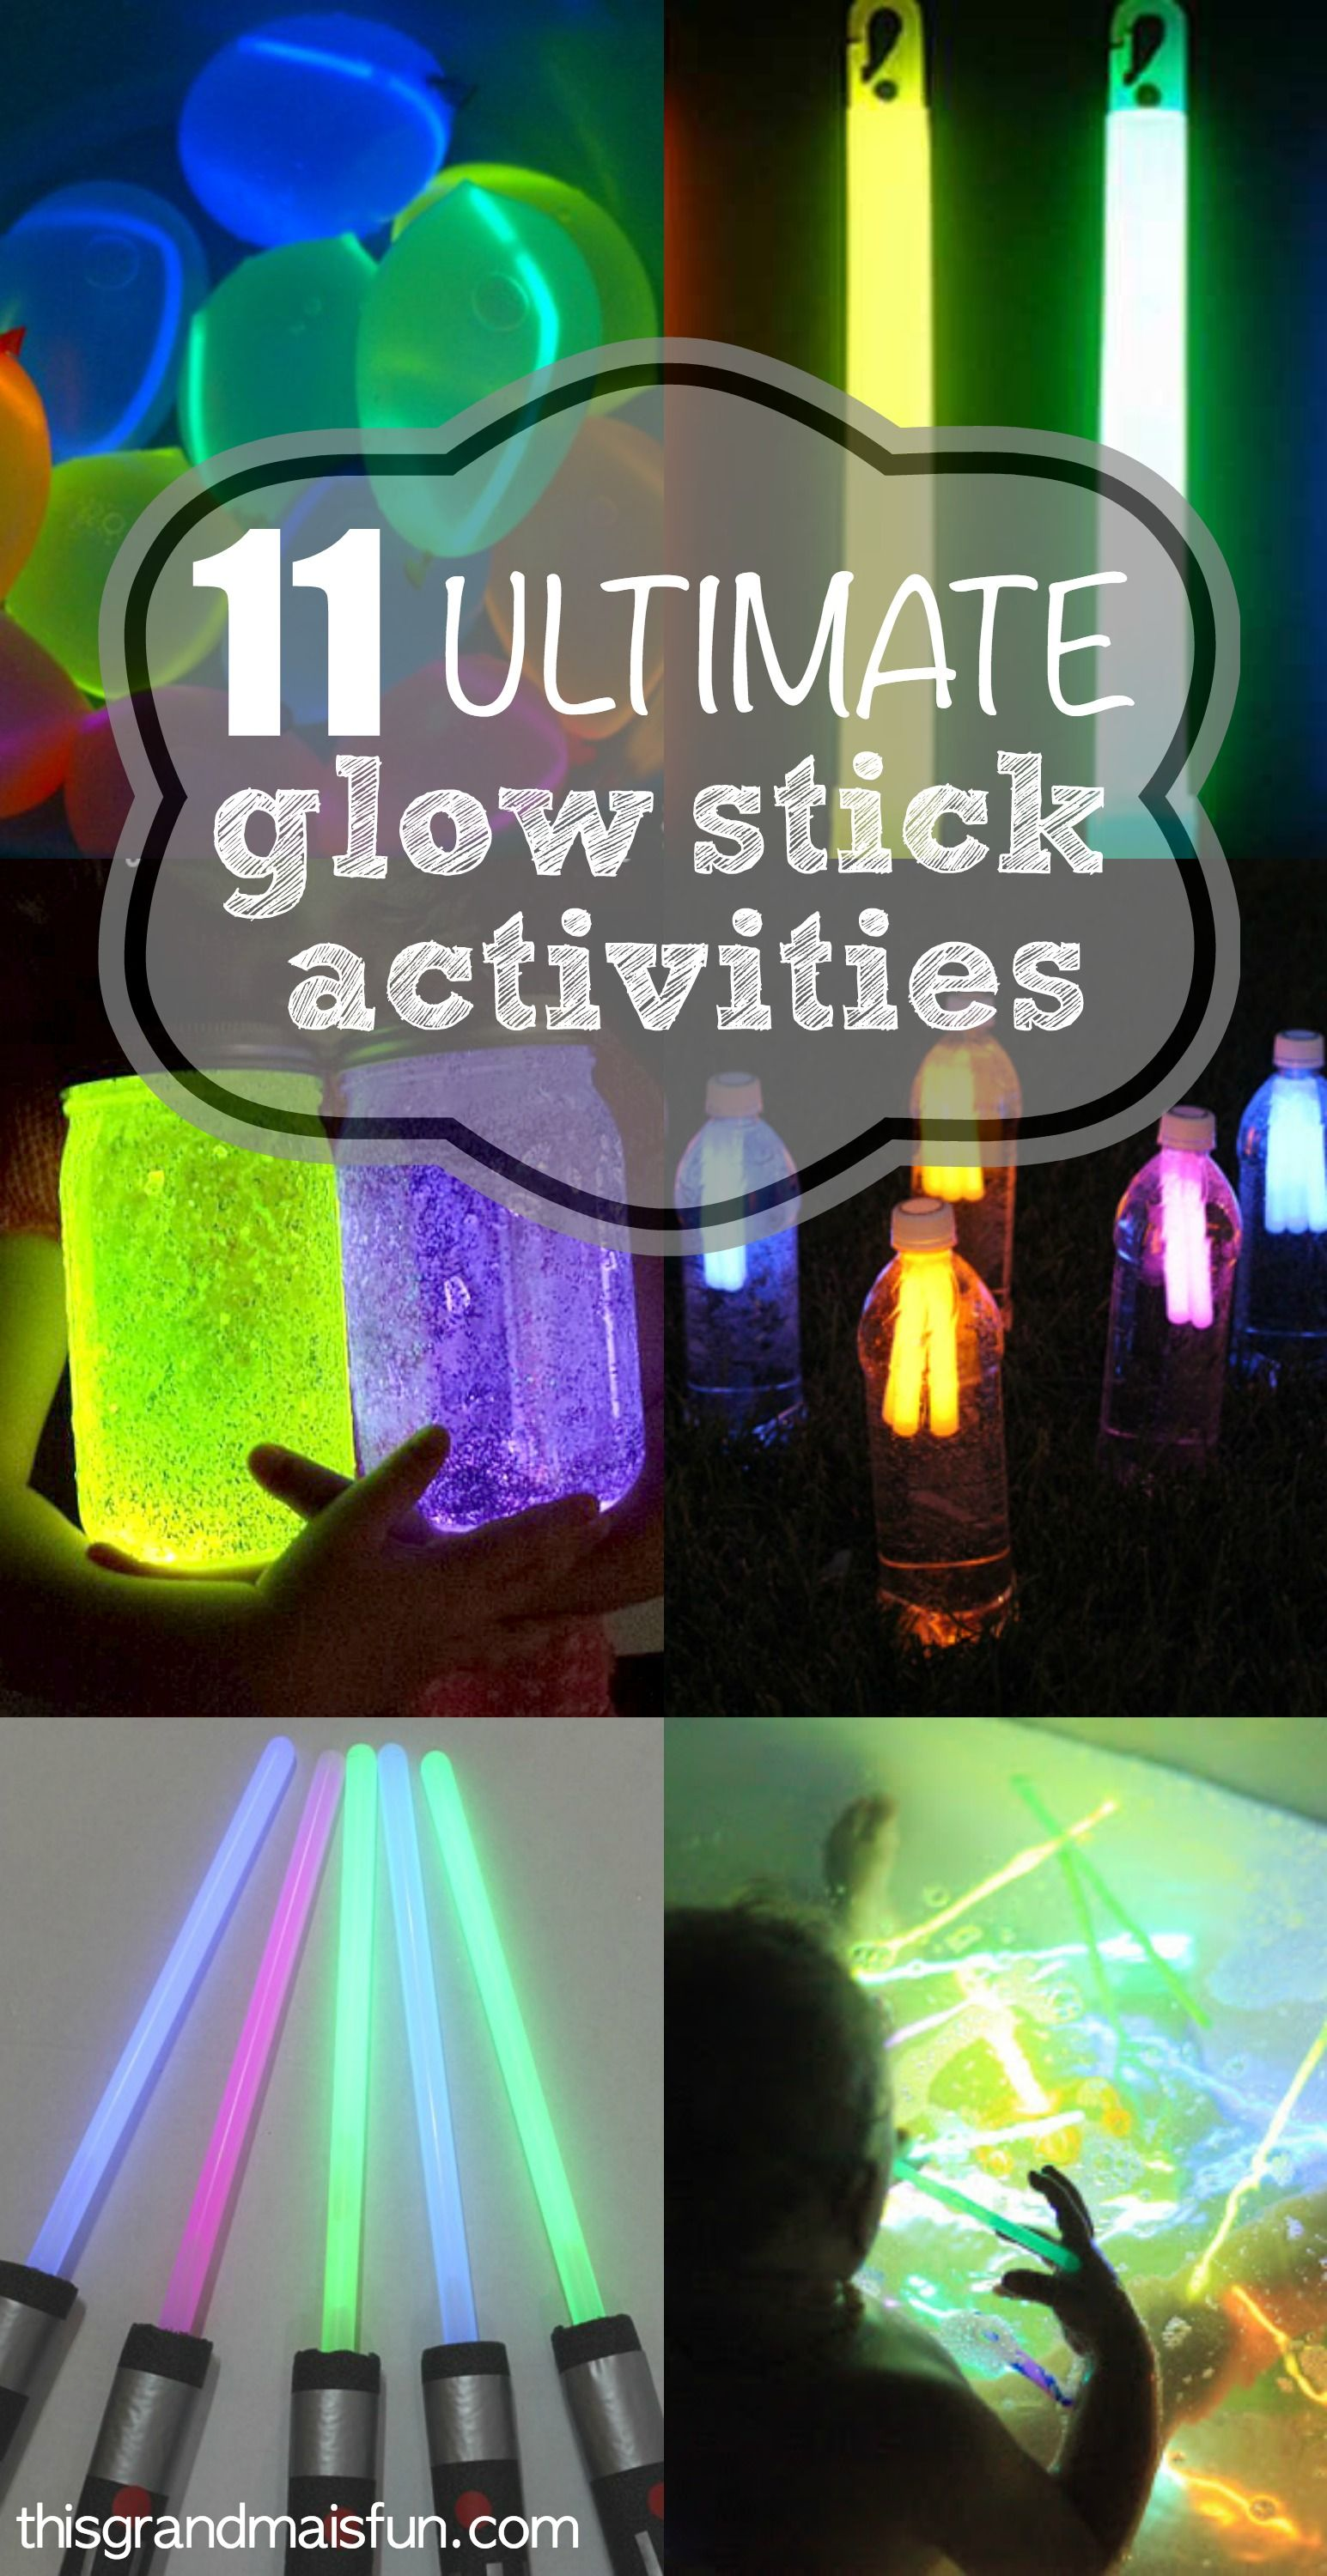 11 ultimate glow stick activities | party ideas and tips for easy